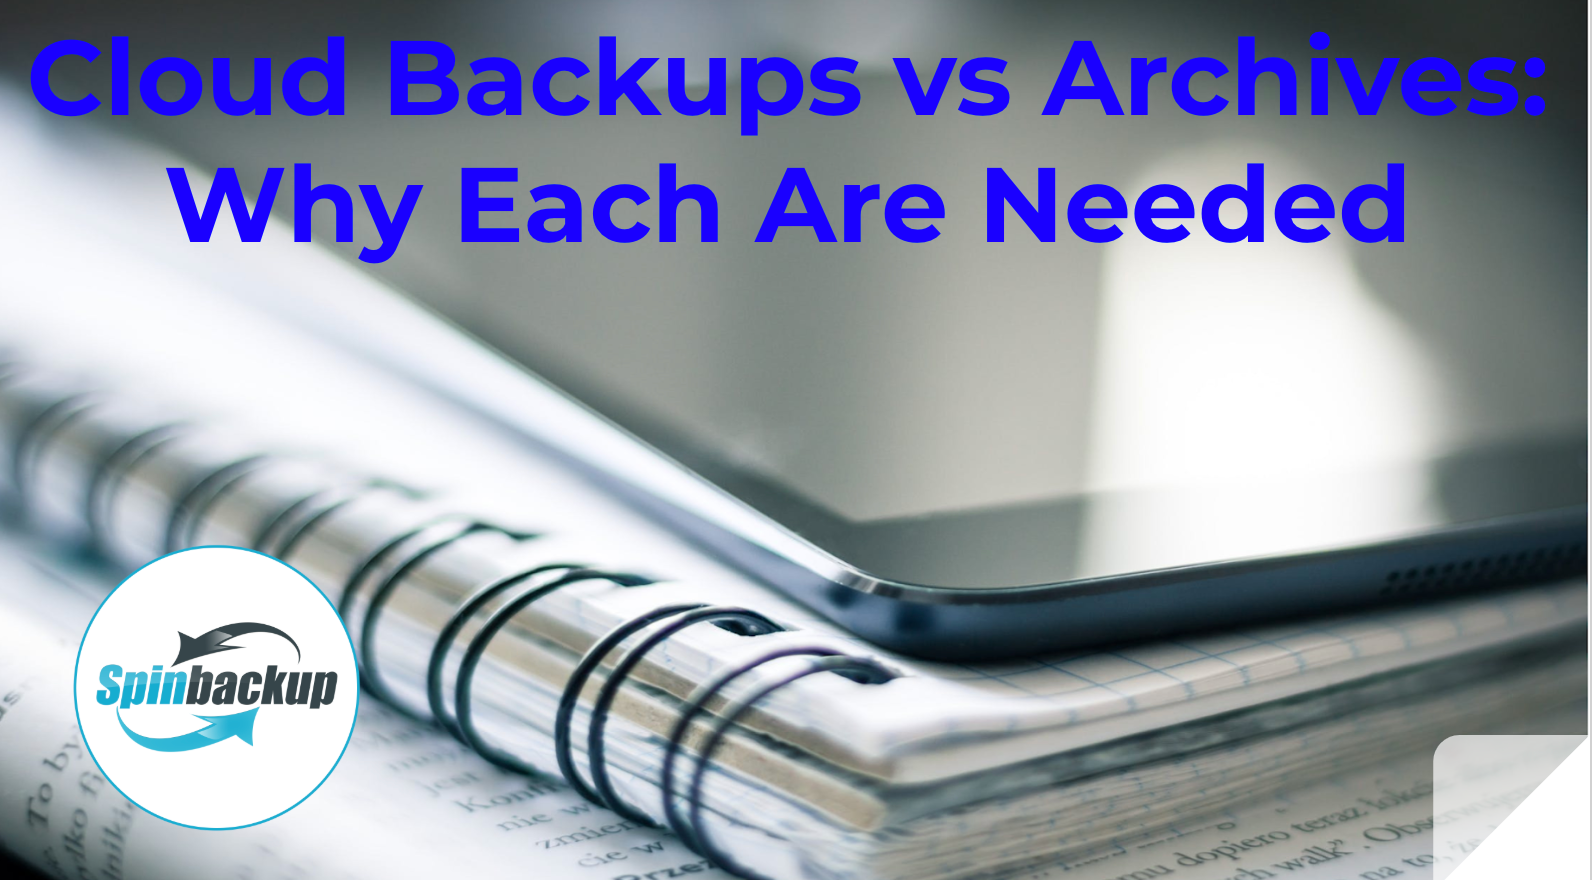 Cloud Backups vs Archives: Why Each Are Needed